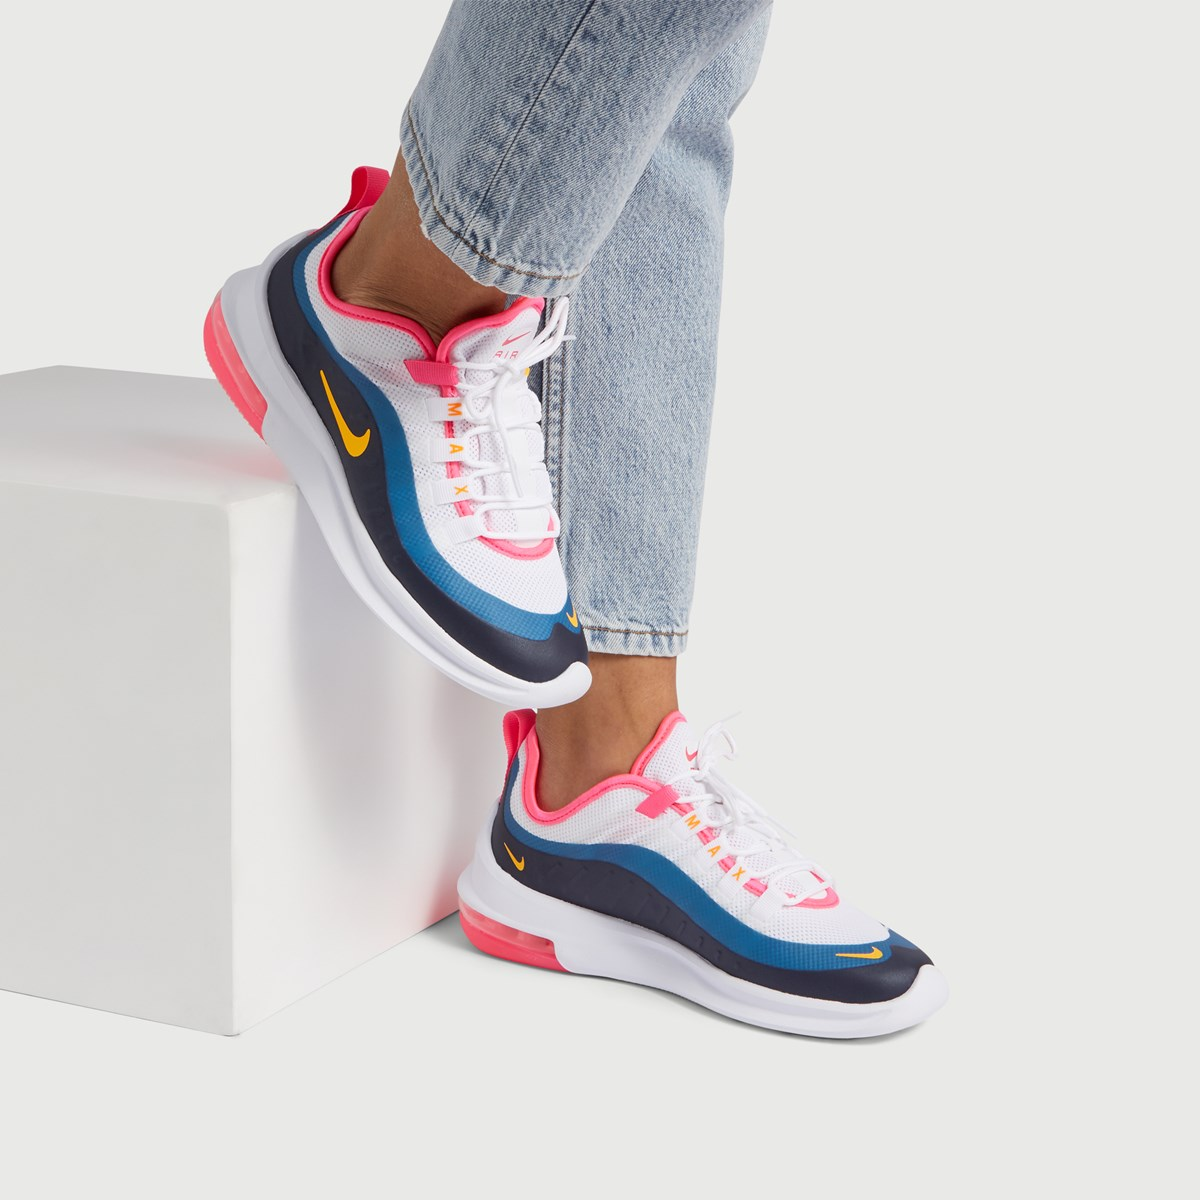 Women's Air Max Axis Sneakers in White